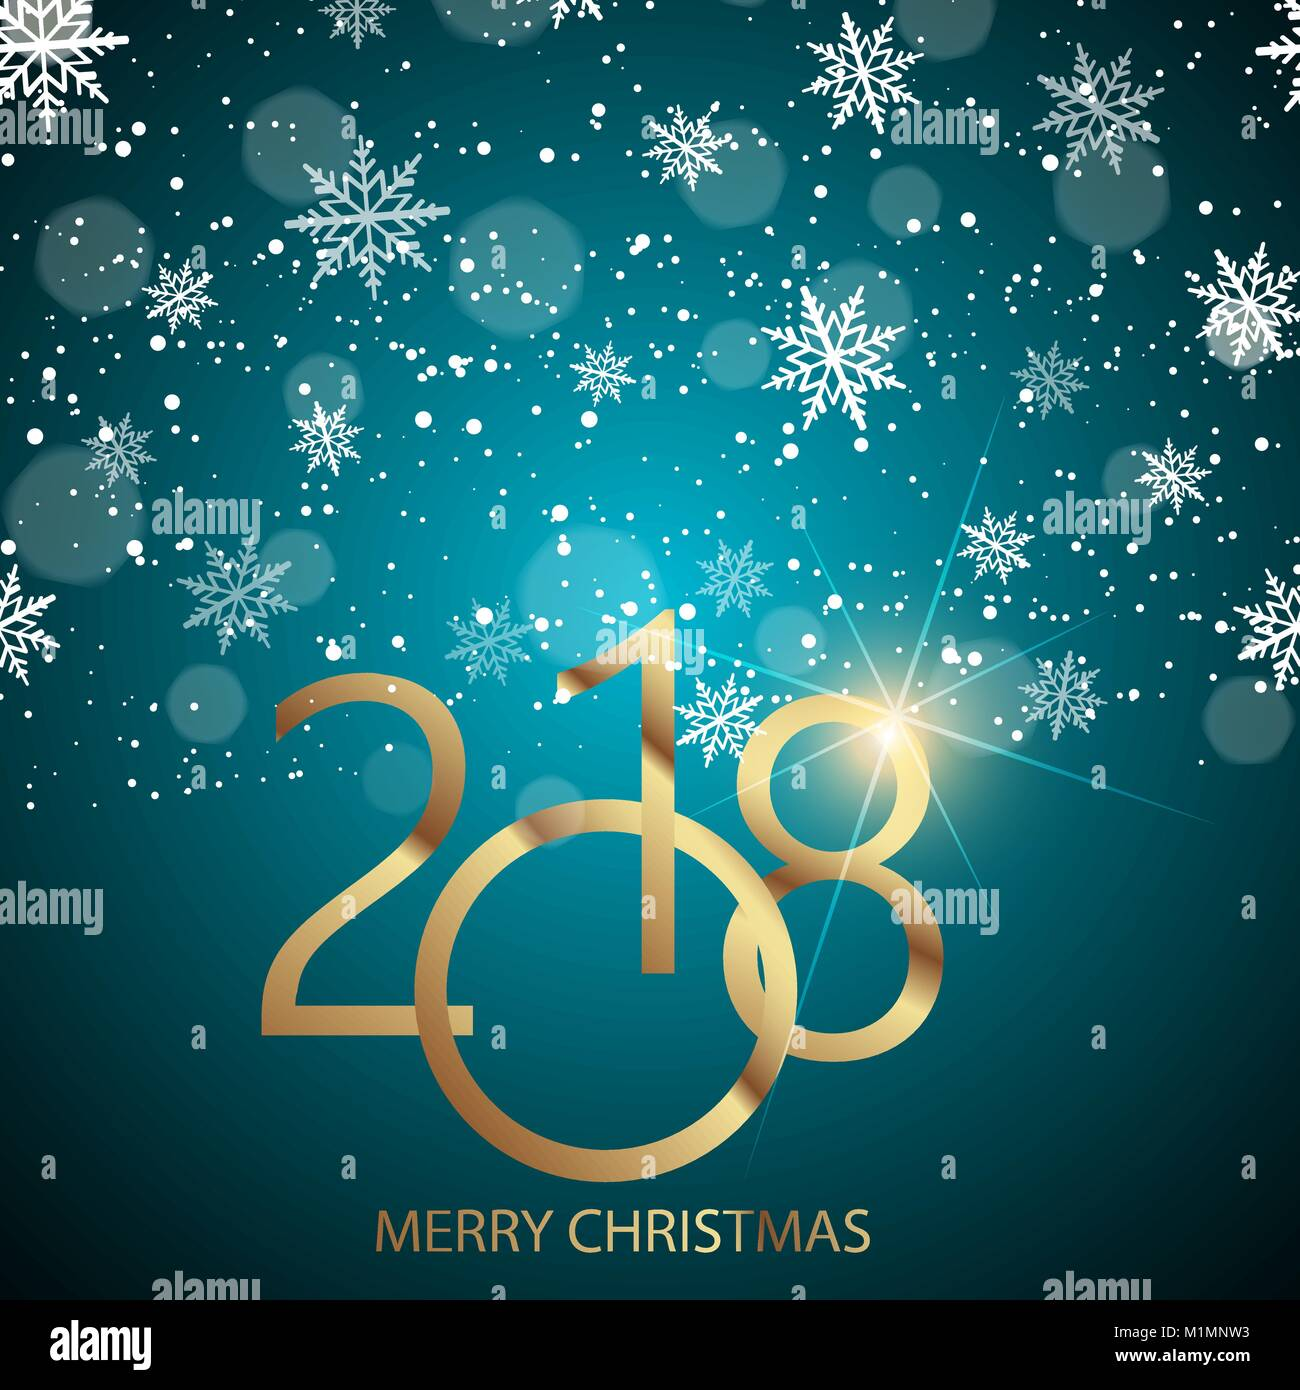 Happy New Year Greeting Card With Shining Gold Text And Snow On Blue